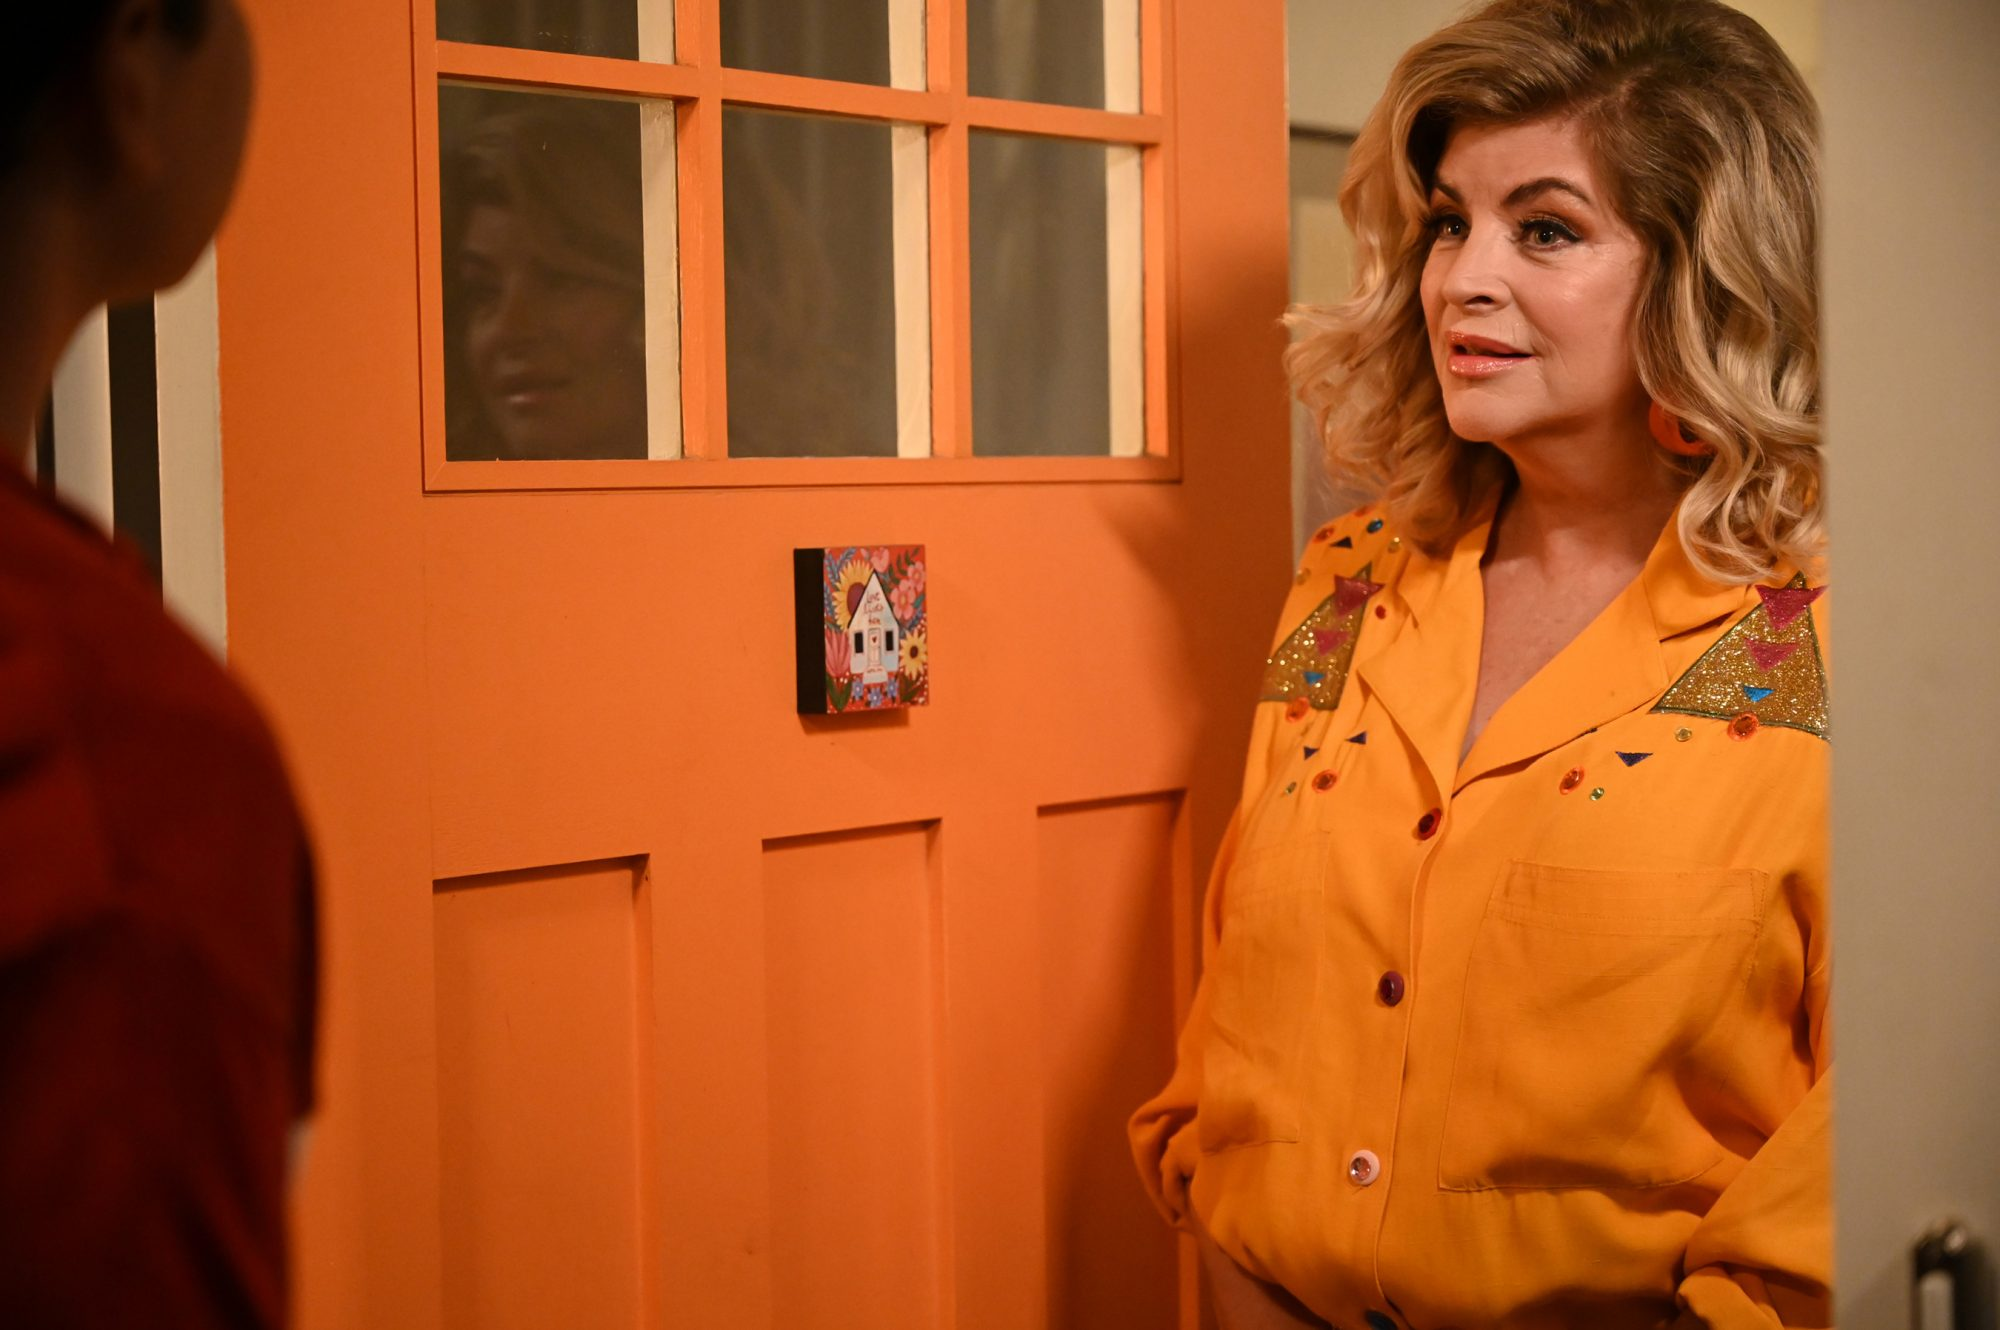 THE GOLDBERGS Kirstie Alley